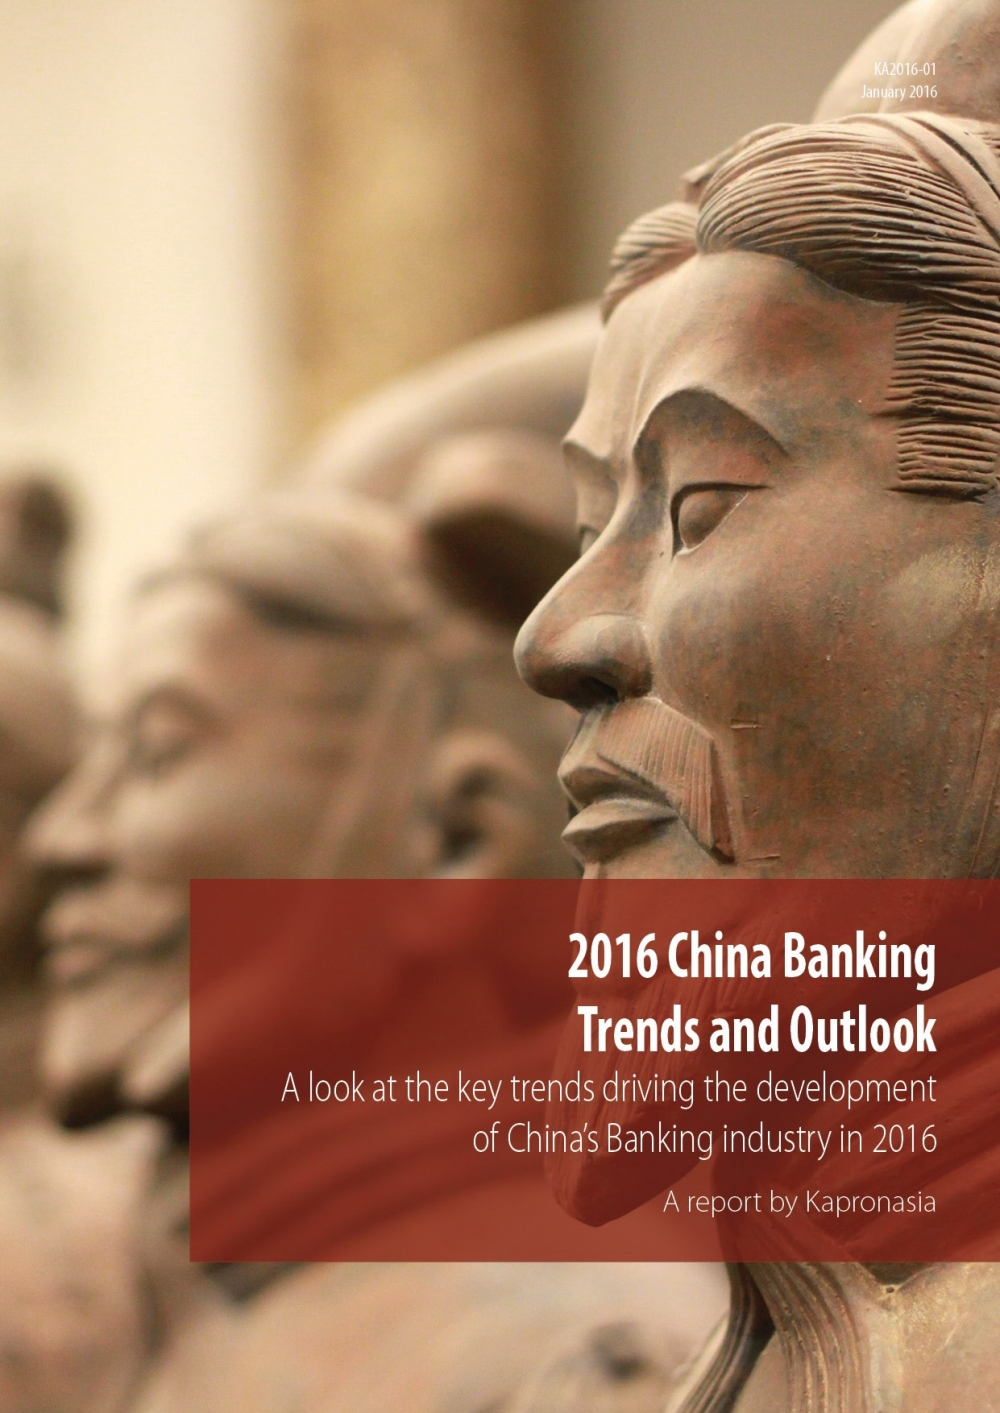 2016 China Banking Trends and Outlook